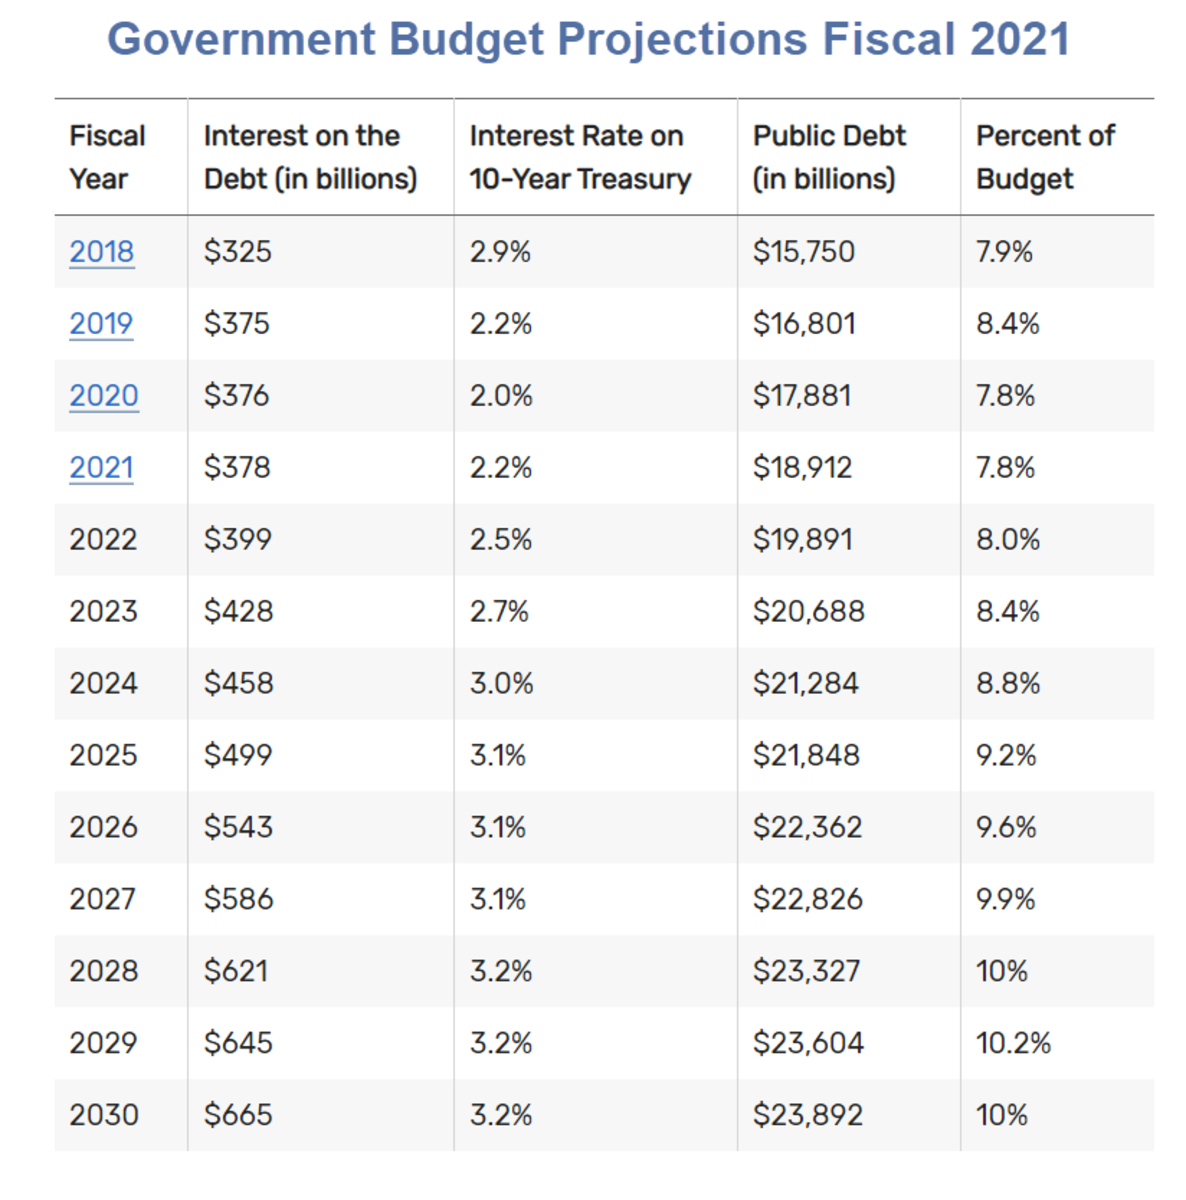 Government Budget Projections Fiscal 2021